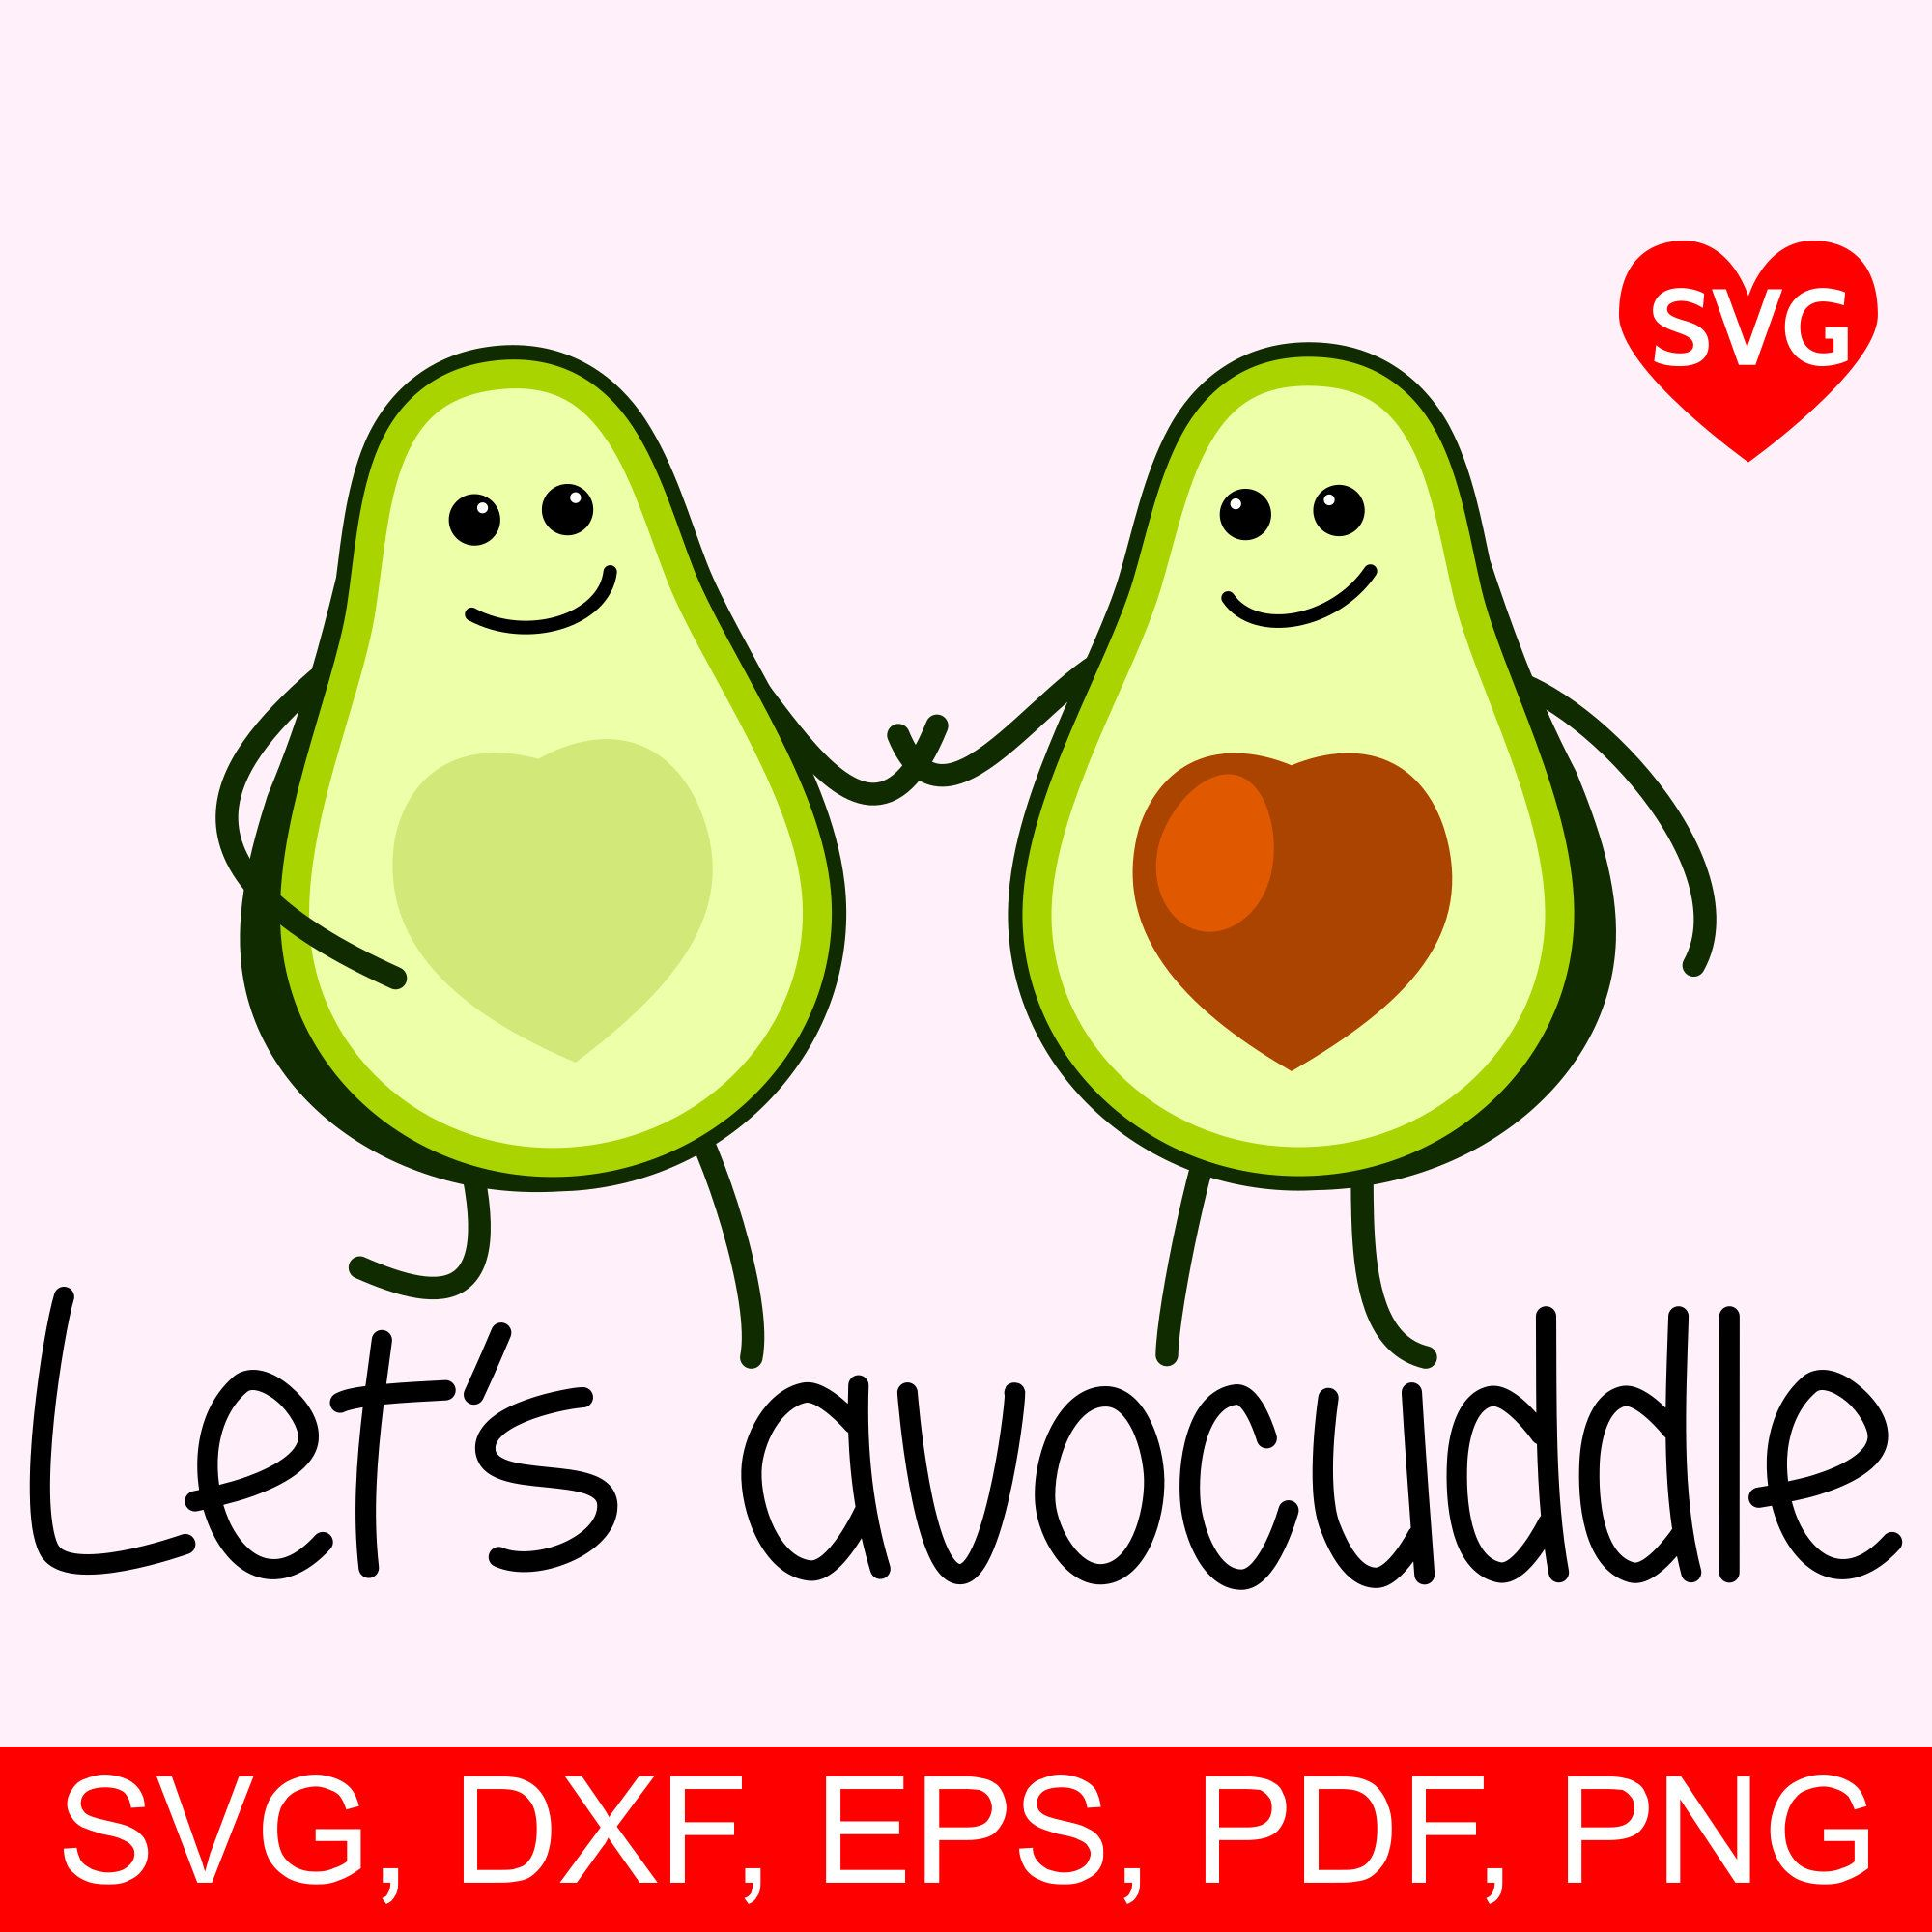 Let S Avocuddle Svg File For Cricut And Silhouette Love Avocado Printable Clipart Etsy Printable Art Silhouette Paper Valentine Svg Files